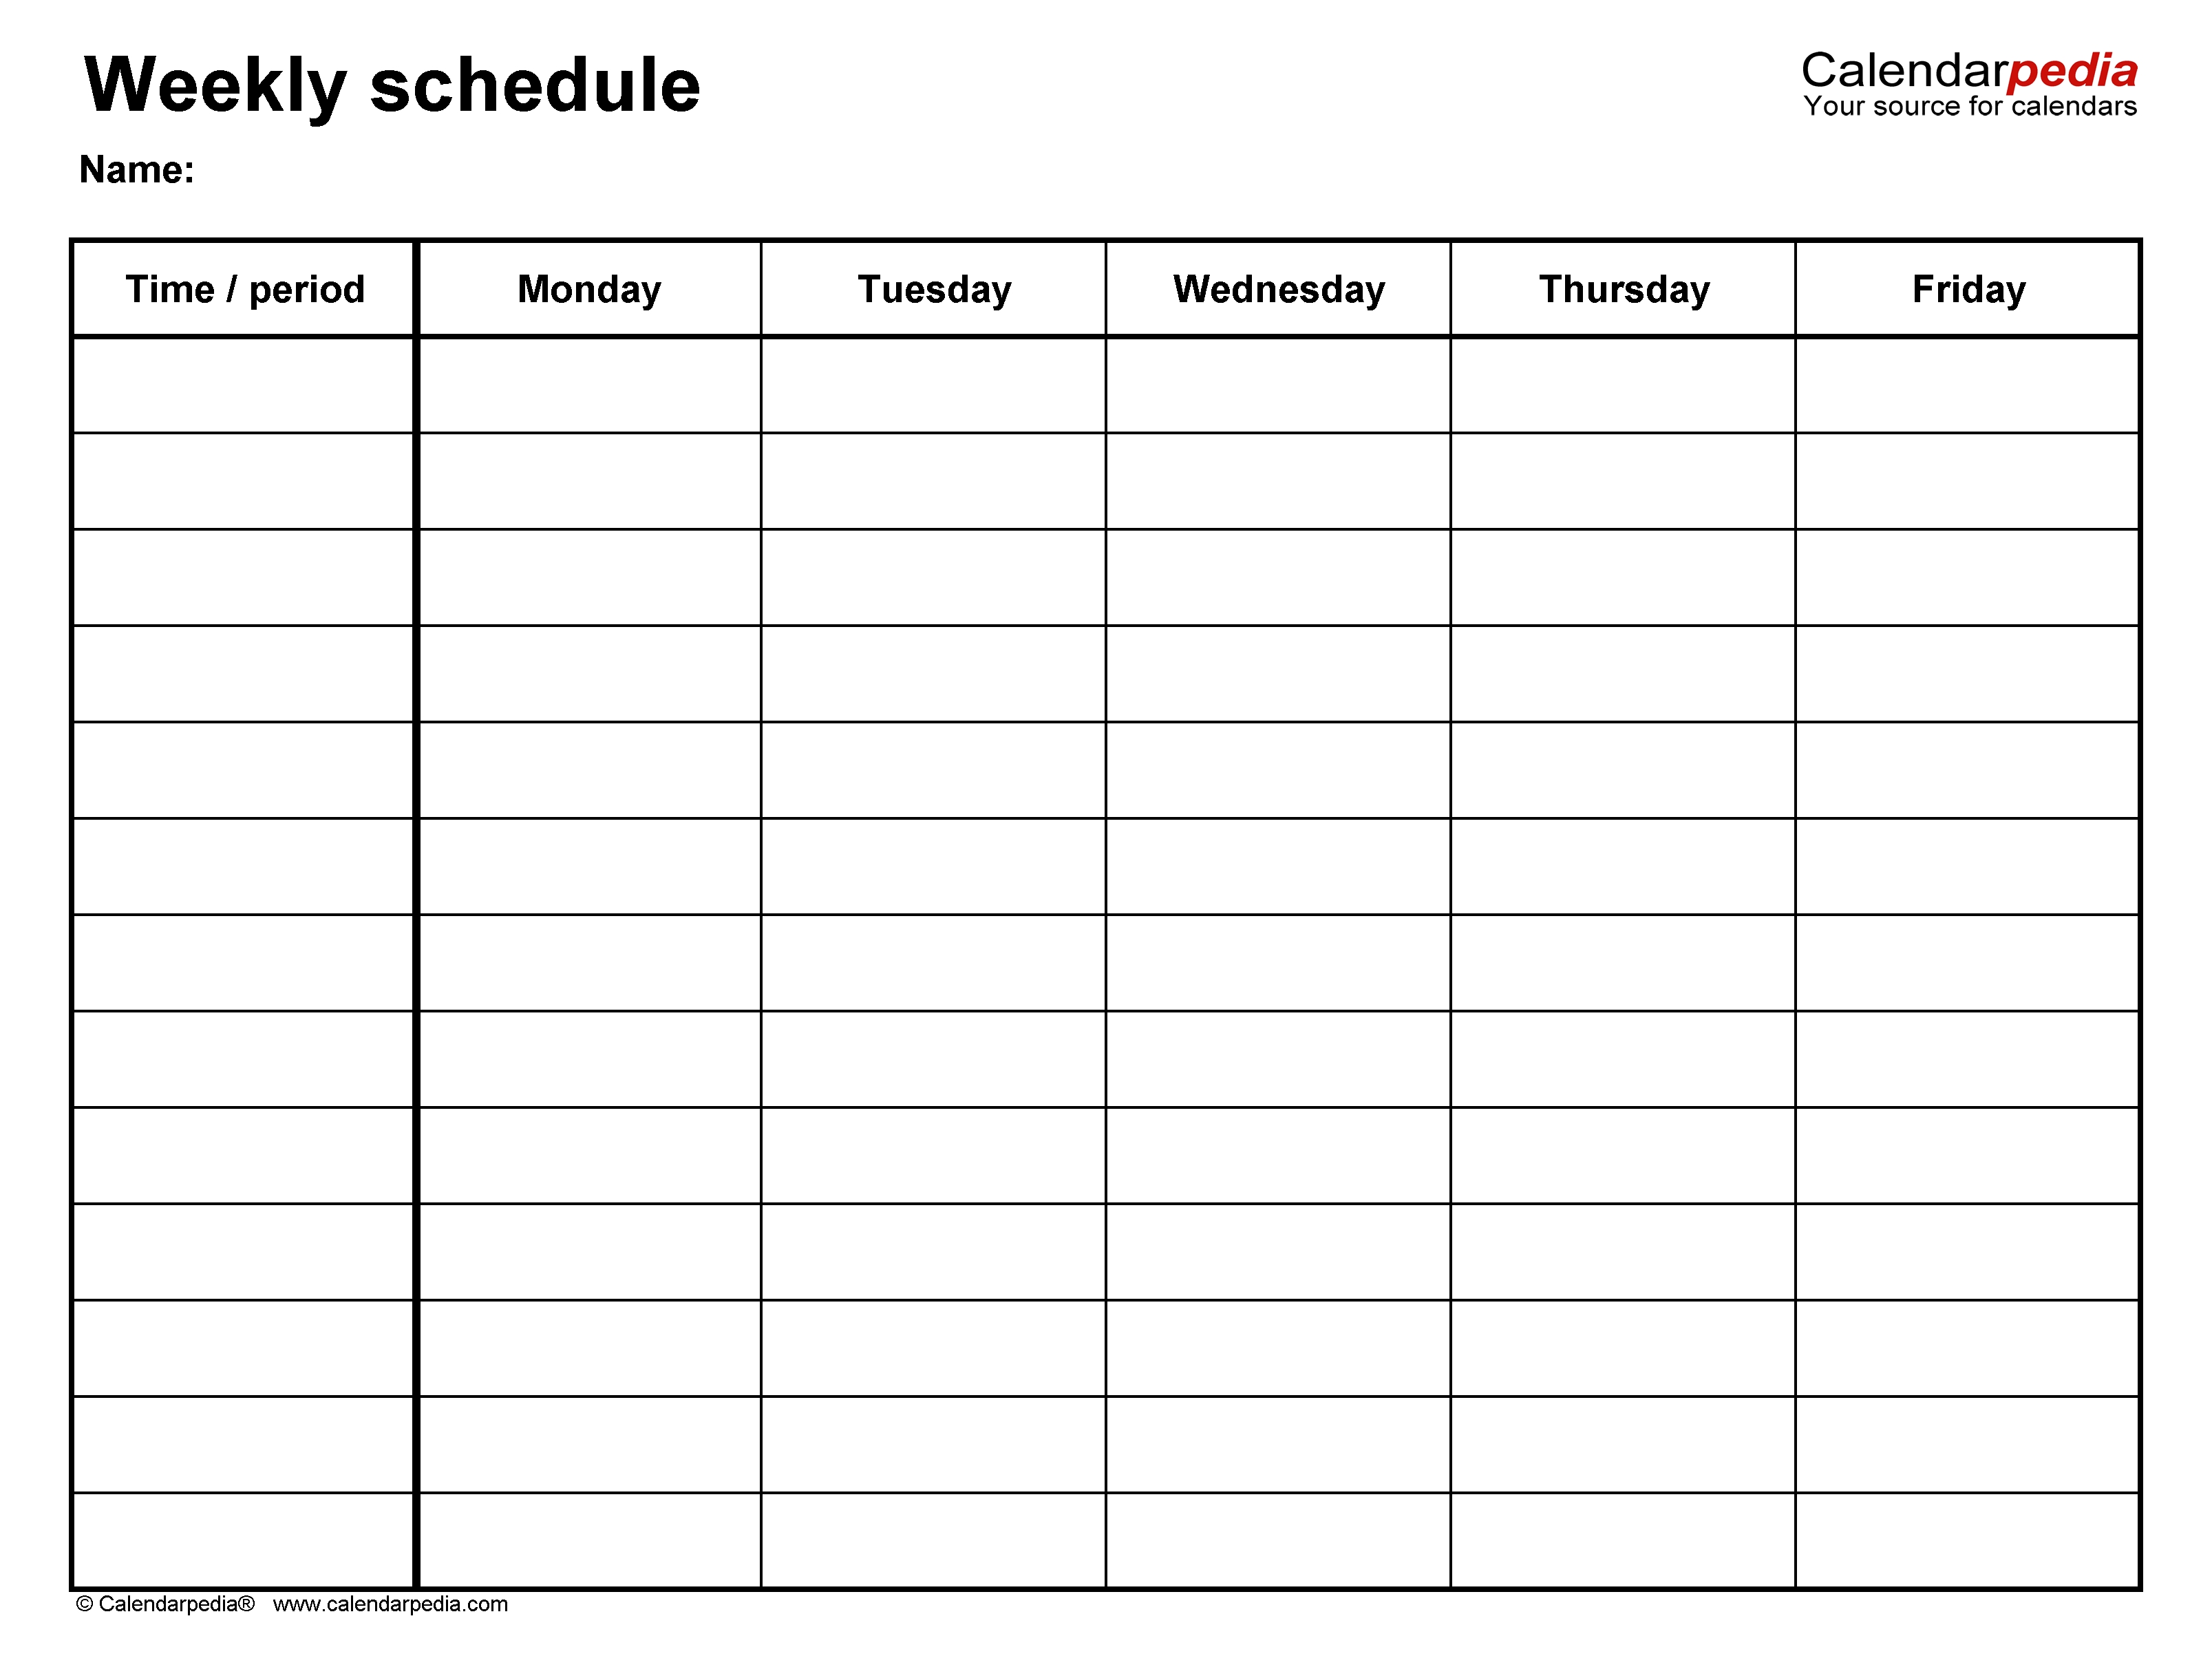 Free Weekly Schedule Templates For Word - 18 Templates for 1 Week Blank Calendar Free Printable